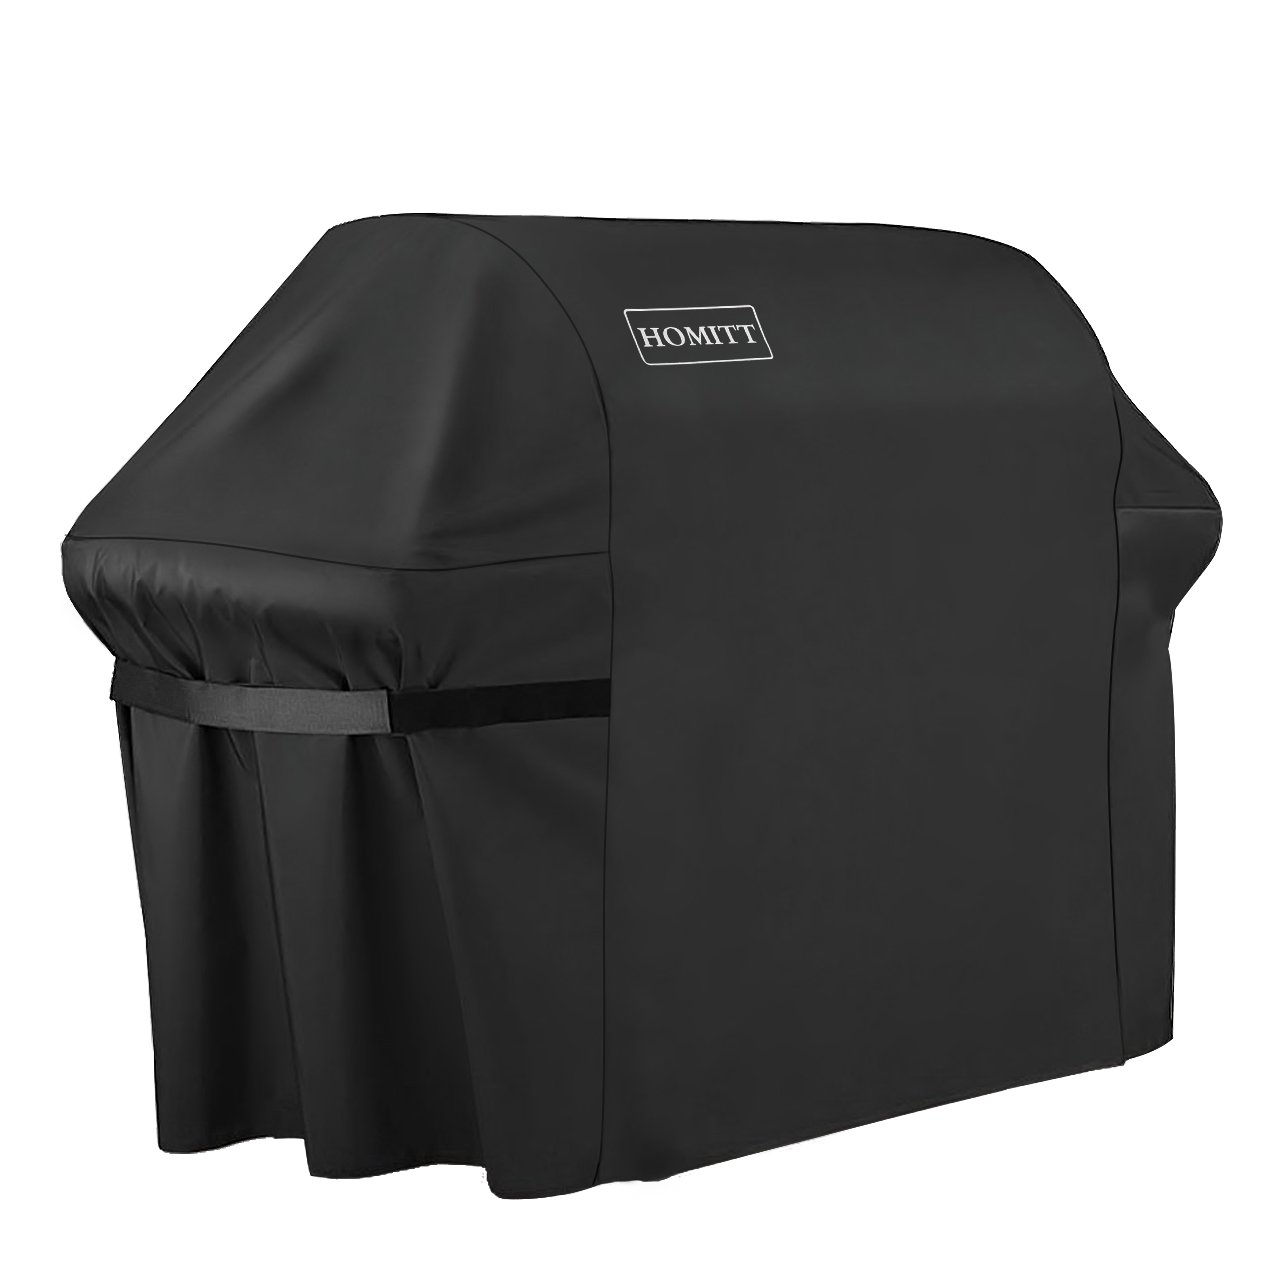 Homitt 44in X 60in Grill Cover, Upgraded 7107 Waterproof BBQ Gas Grill Cover with 600D Heavy Duty Oxford Fabric and PVC Facing for Genesis E and S Series Gas Grills